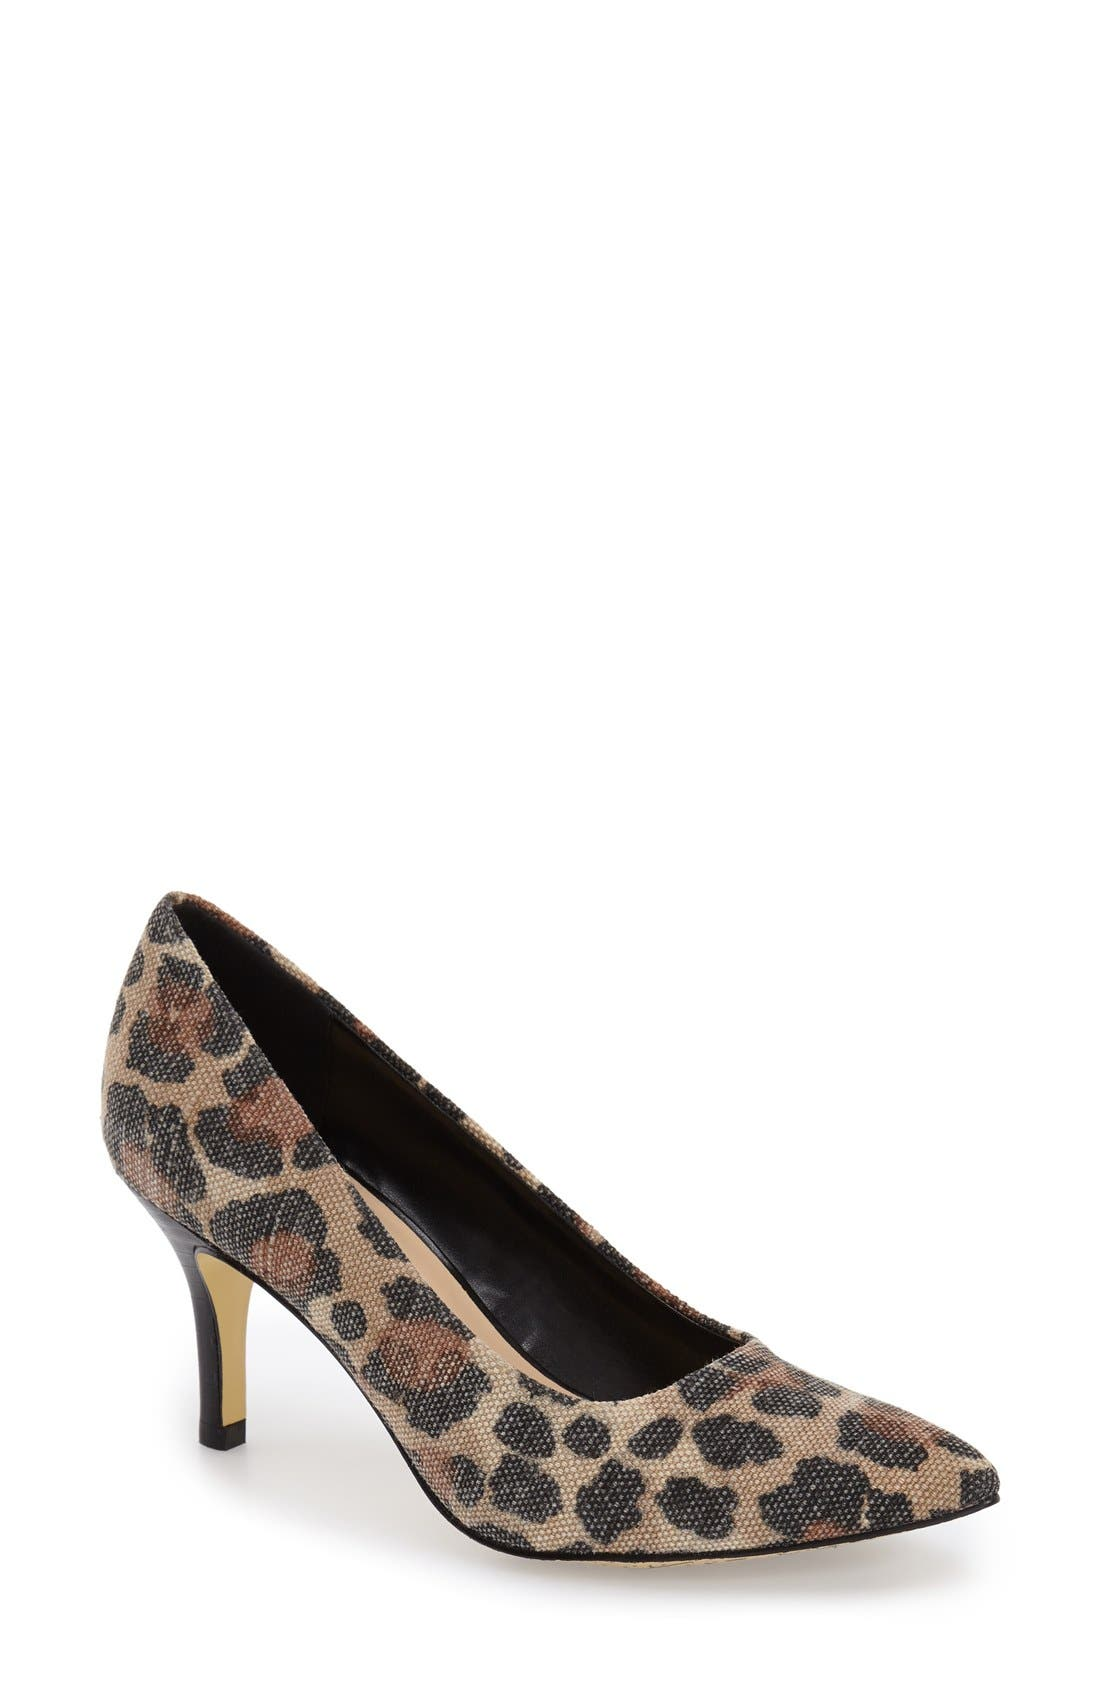 'Define' Pointy Toe Pump,                         Main,                         color, Leopard